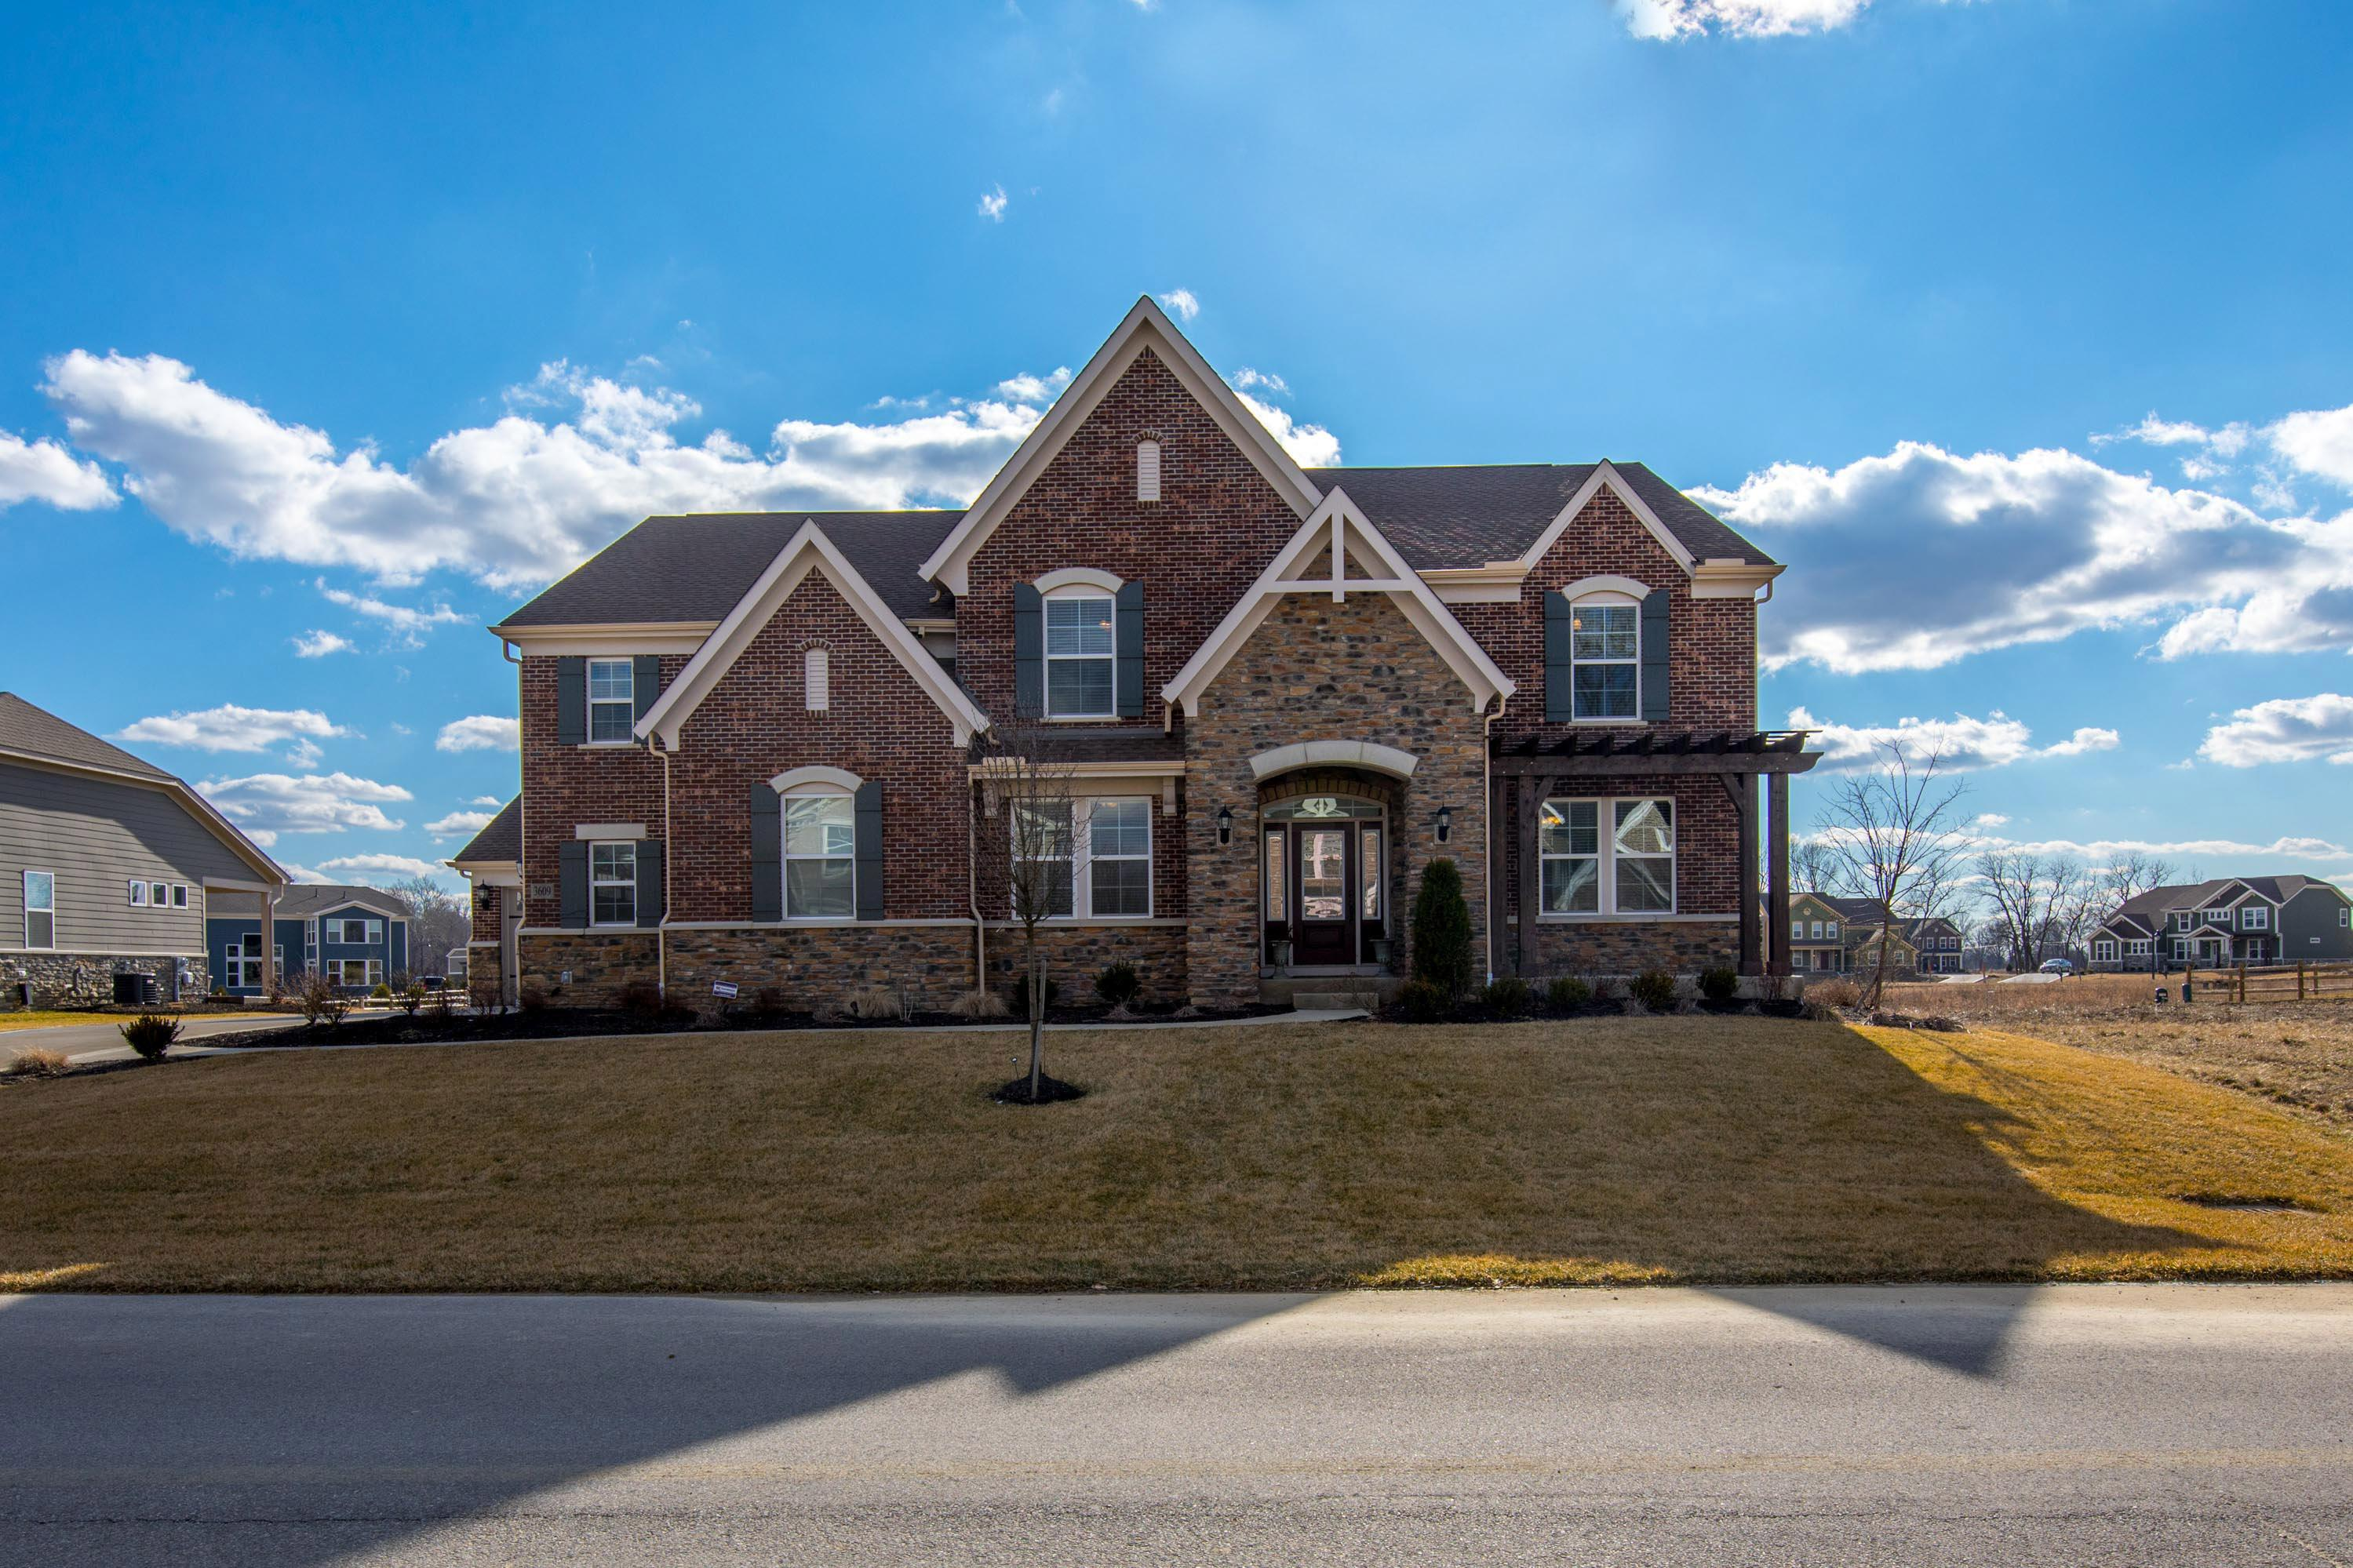 Photo of 3609 Sparrow Court, Hilliard, OH 43026